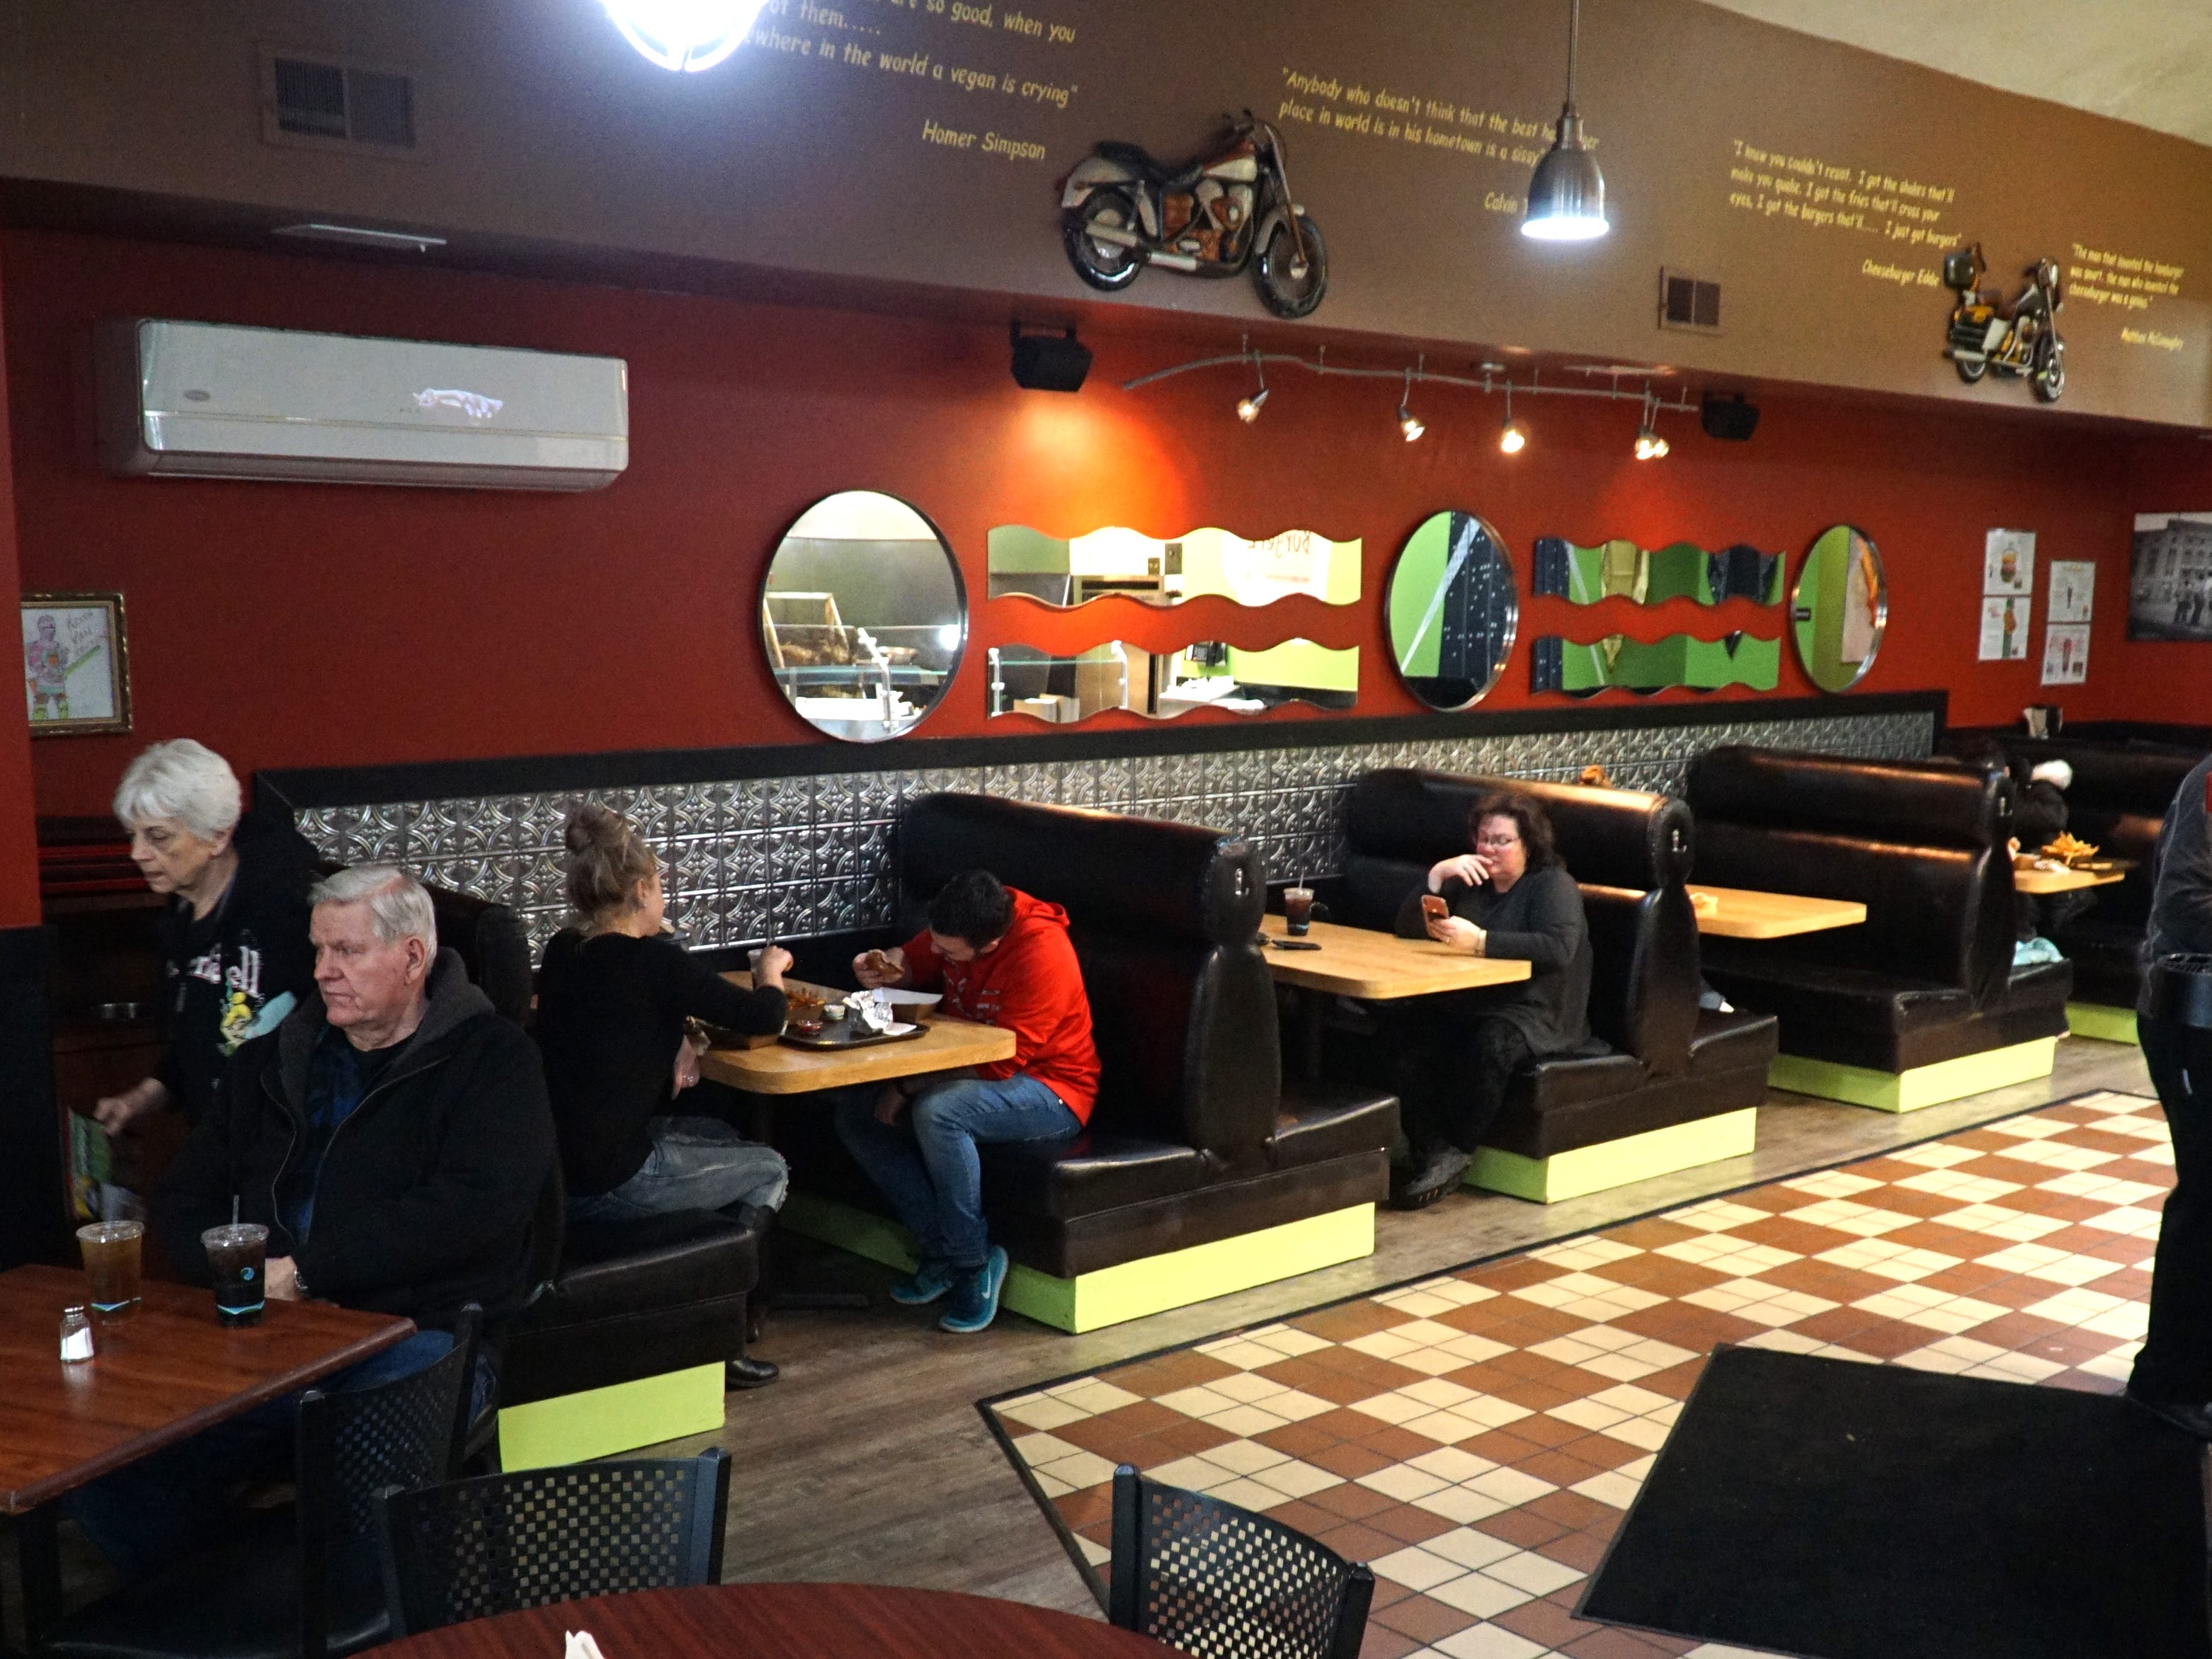 The Burger Joint has seating for about 32 customers.